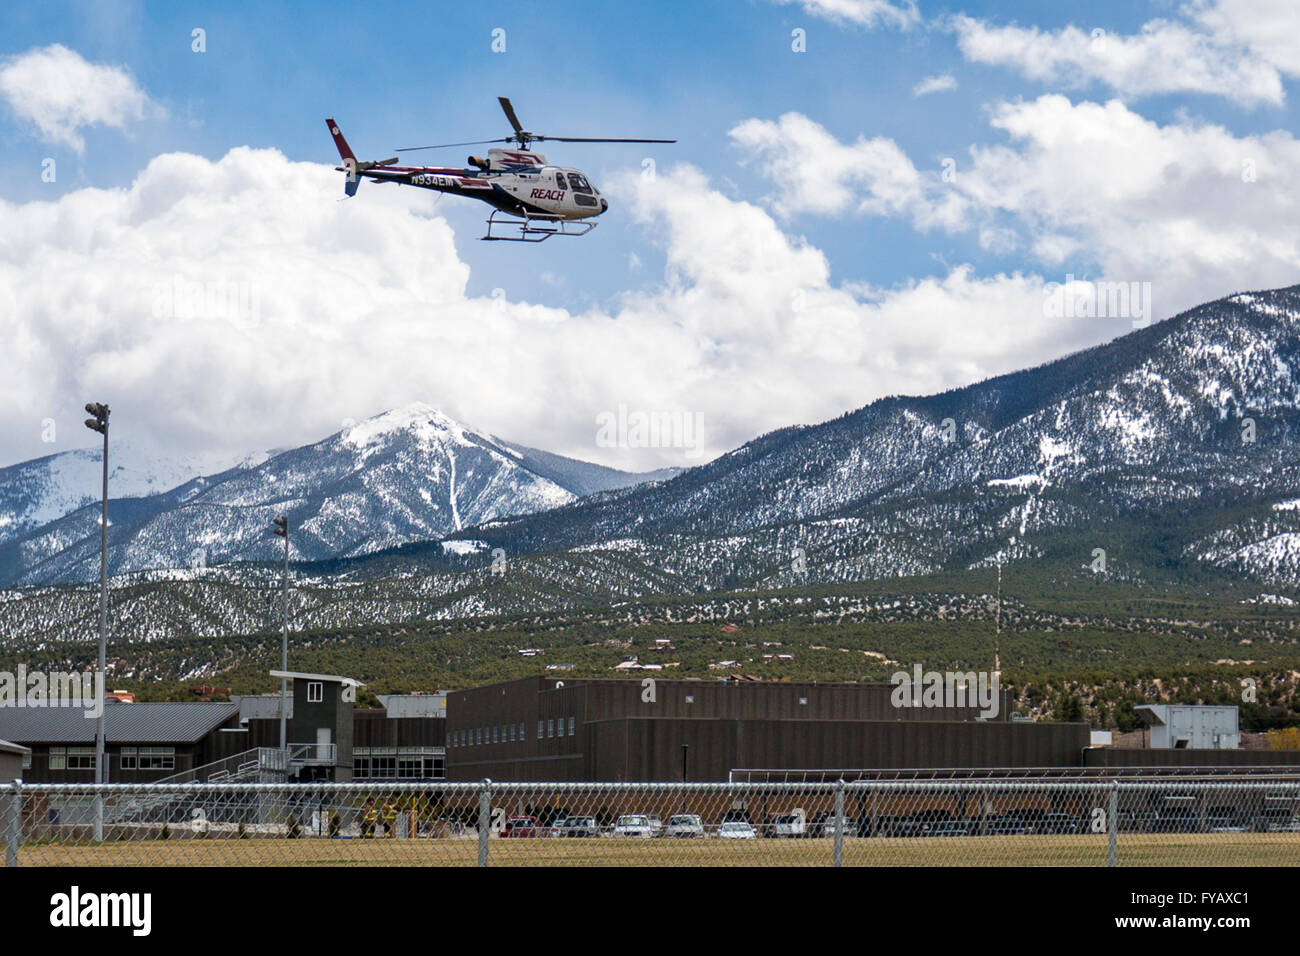 'Reach' Flight for Life medical helicopter landing on high school field - Stock Image